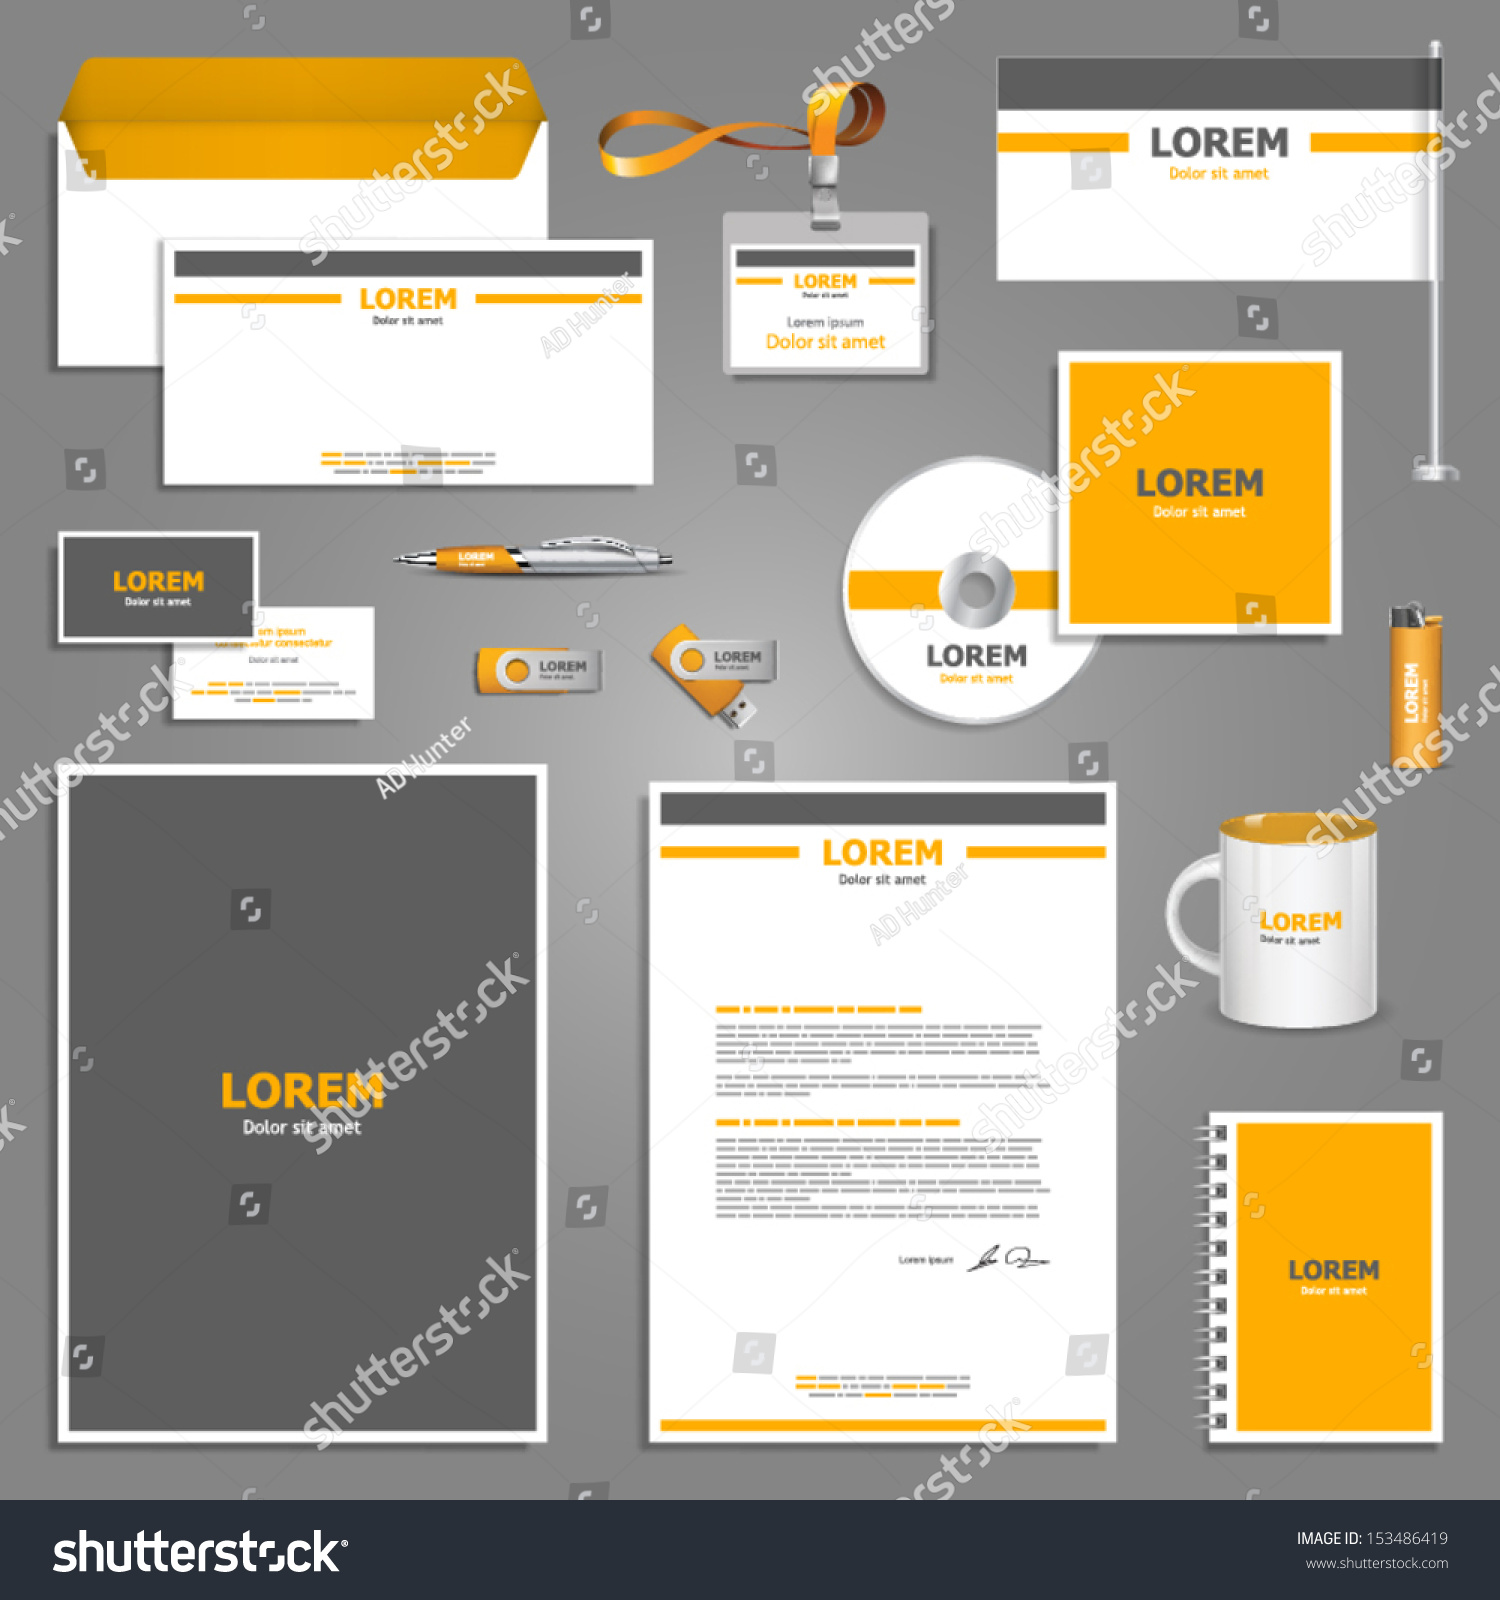 corporate identity template vector company style for brandbook and guideline eps 10. Black Bedroom Furniture Sets. Home Design Ideas